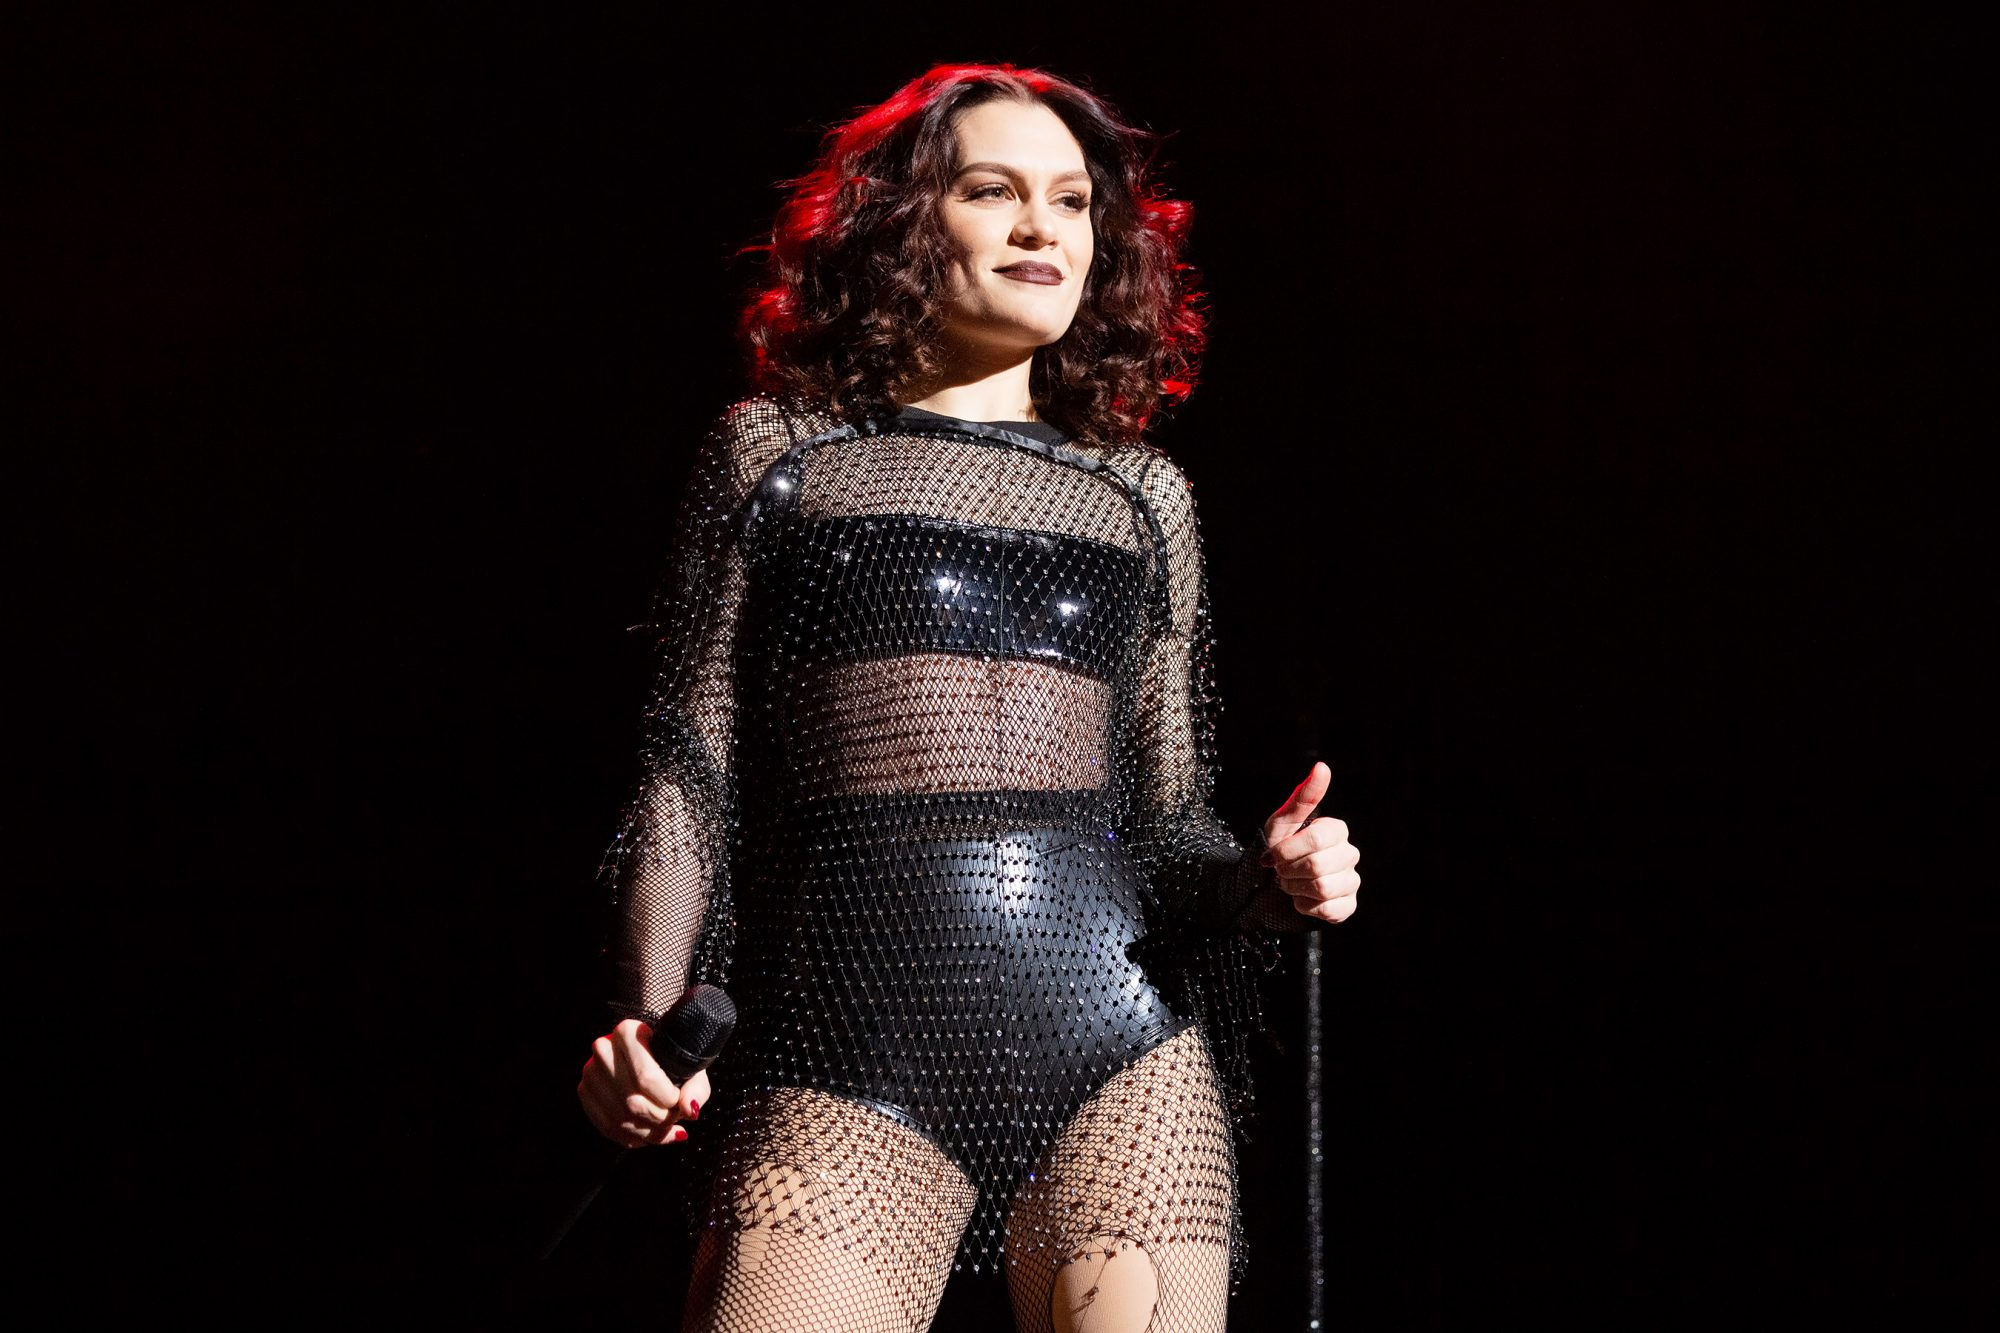 Jessie J Performs At The O2 Academy, Leeds